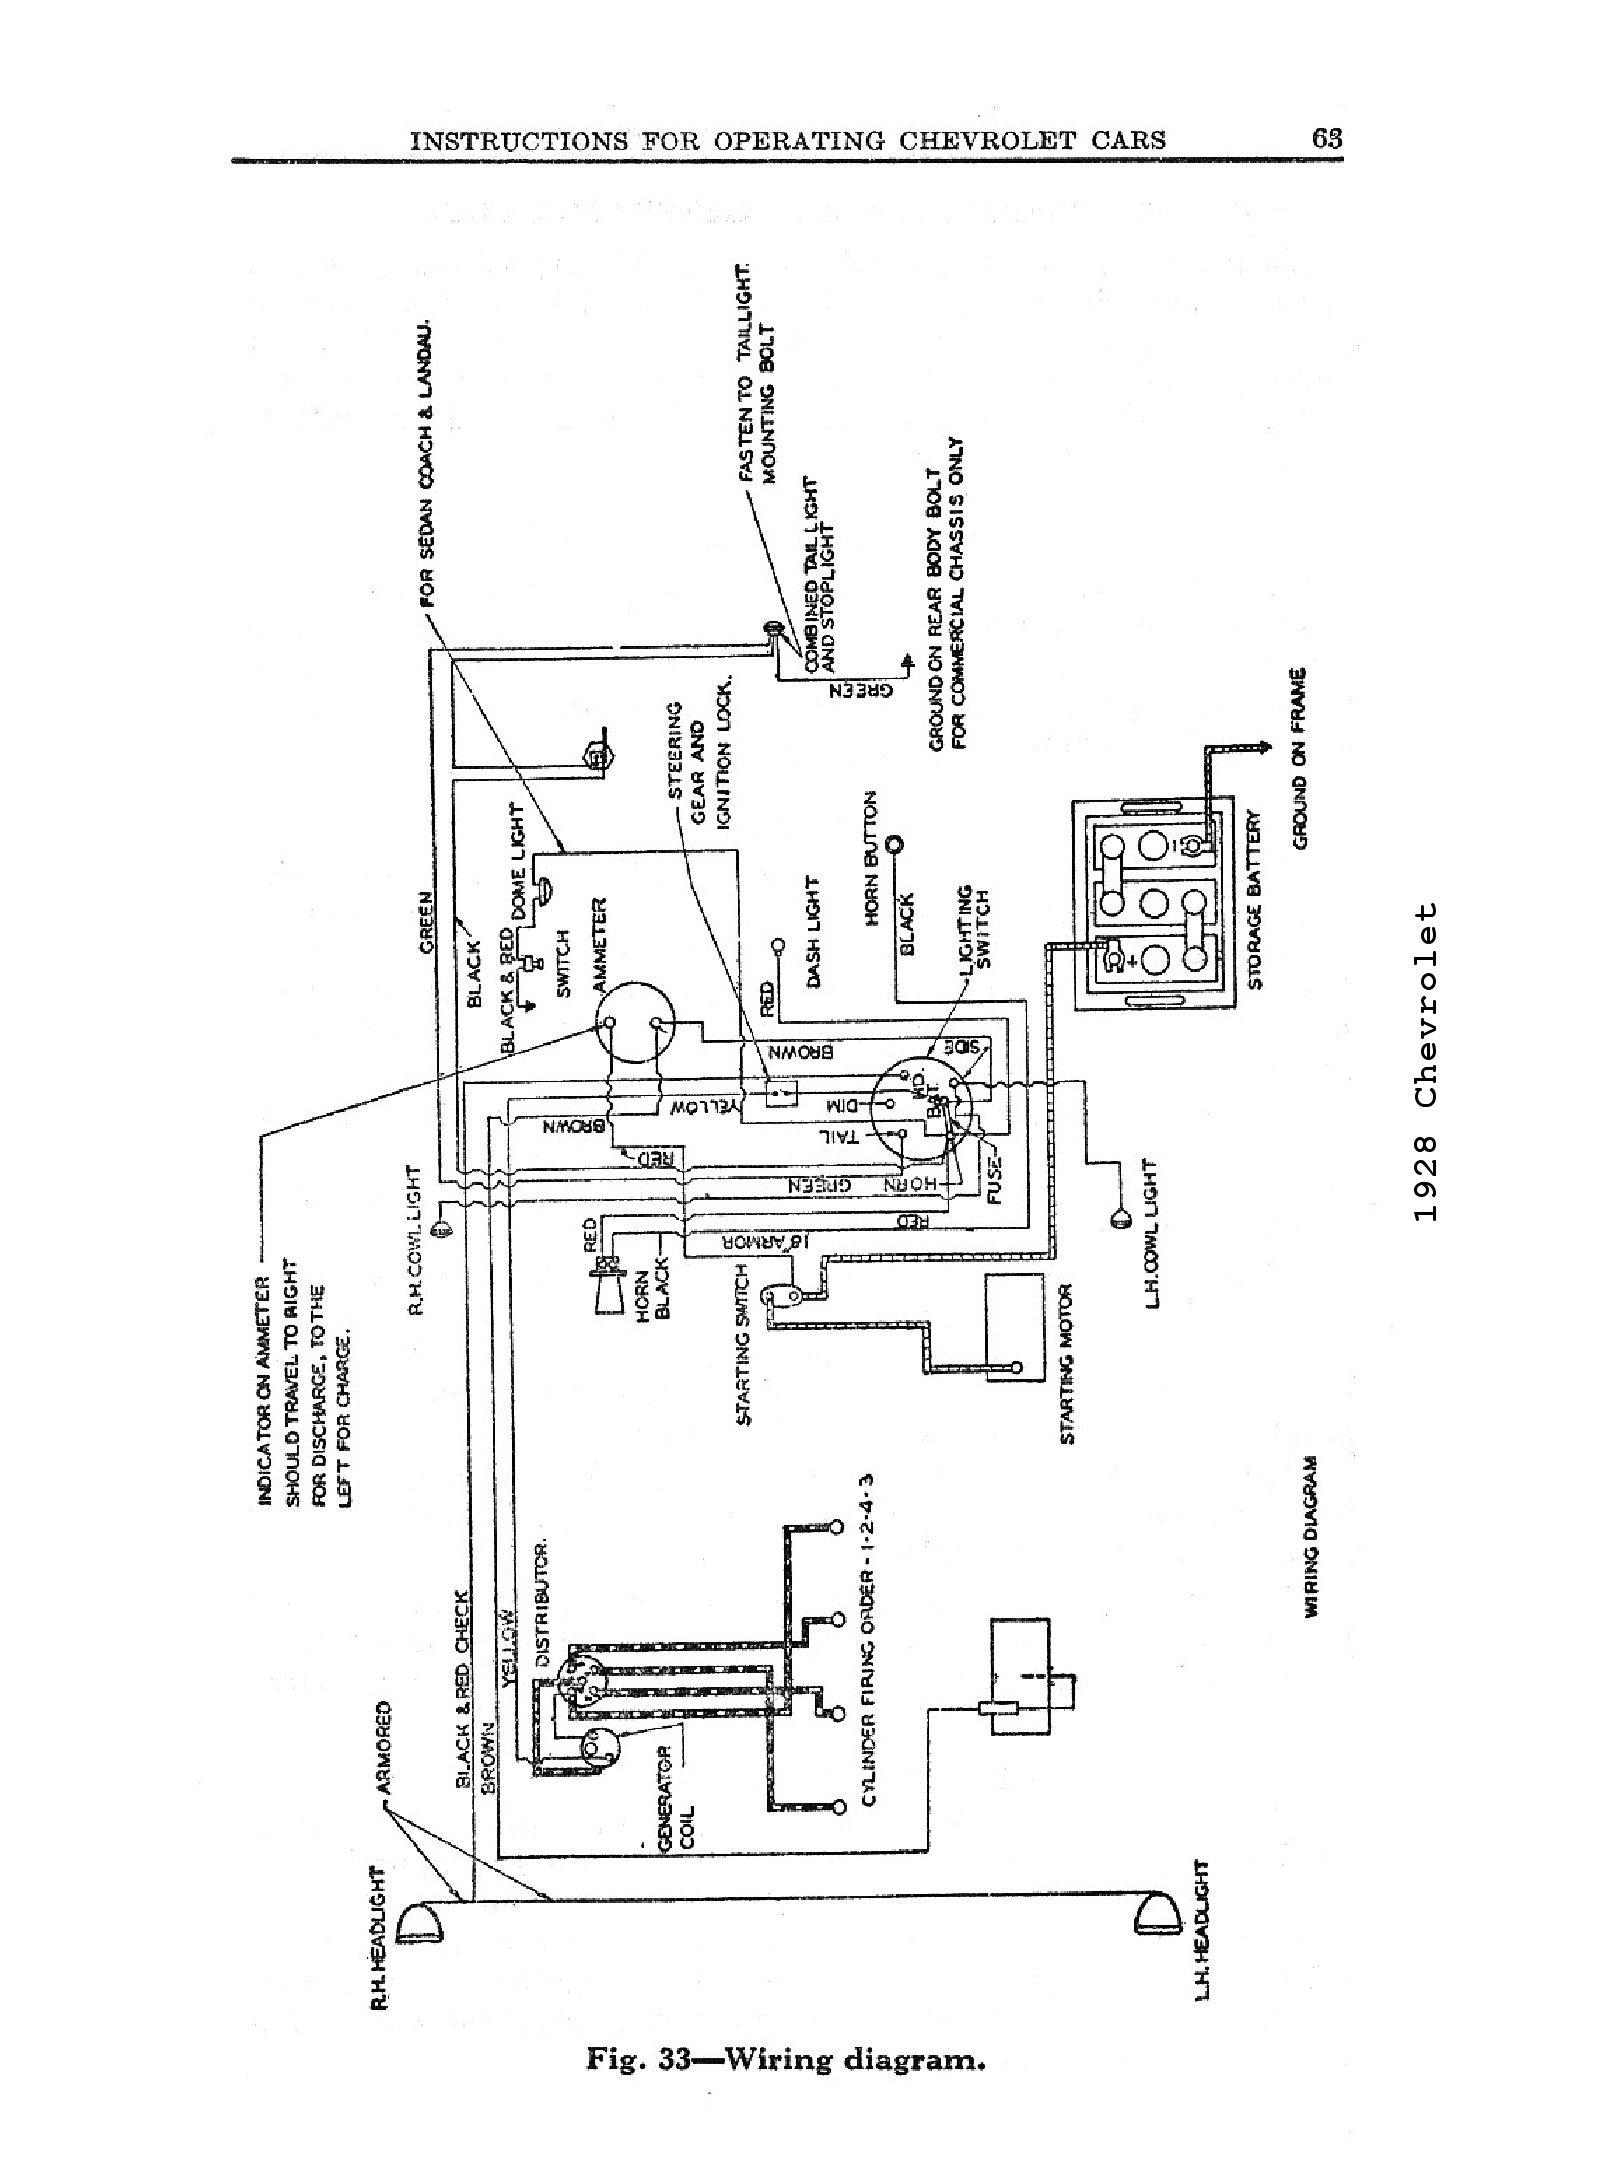 2004 silverado wiring diagram pdf Download-1928 1928 Wiring Diagrams · 1928 General Wiring 13-o